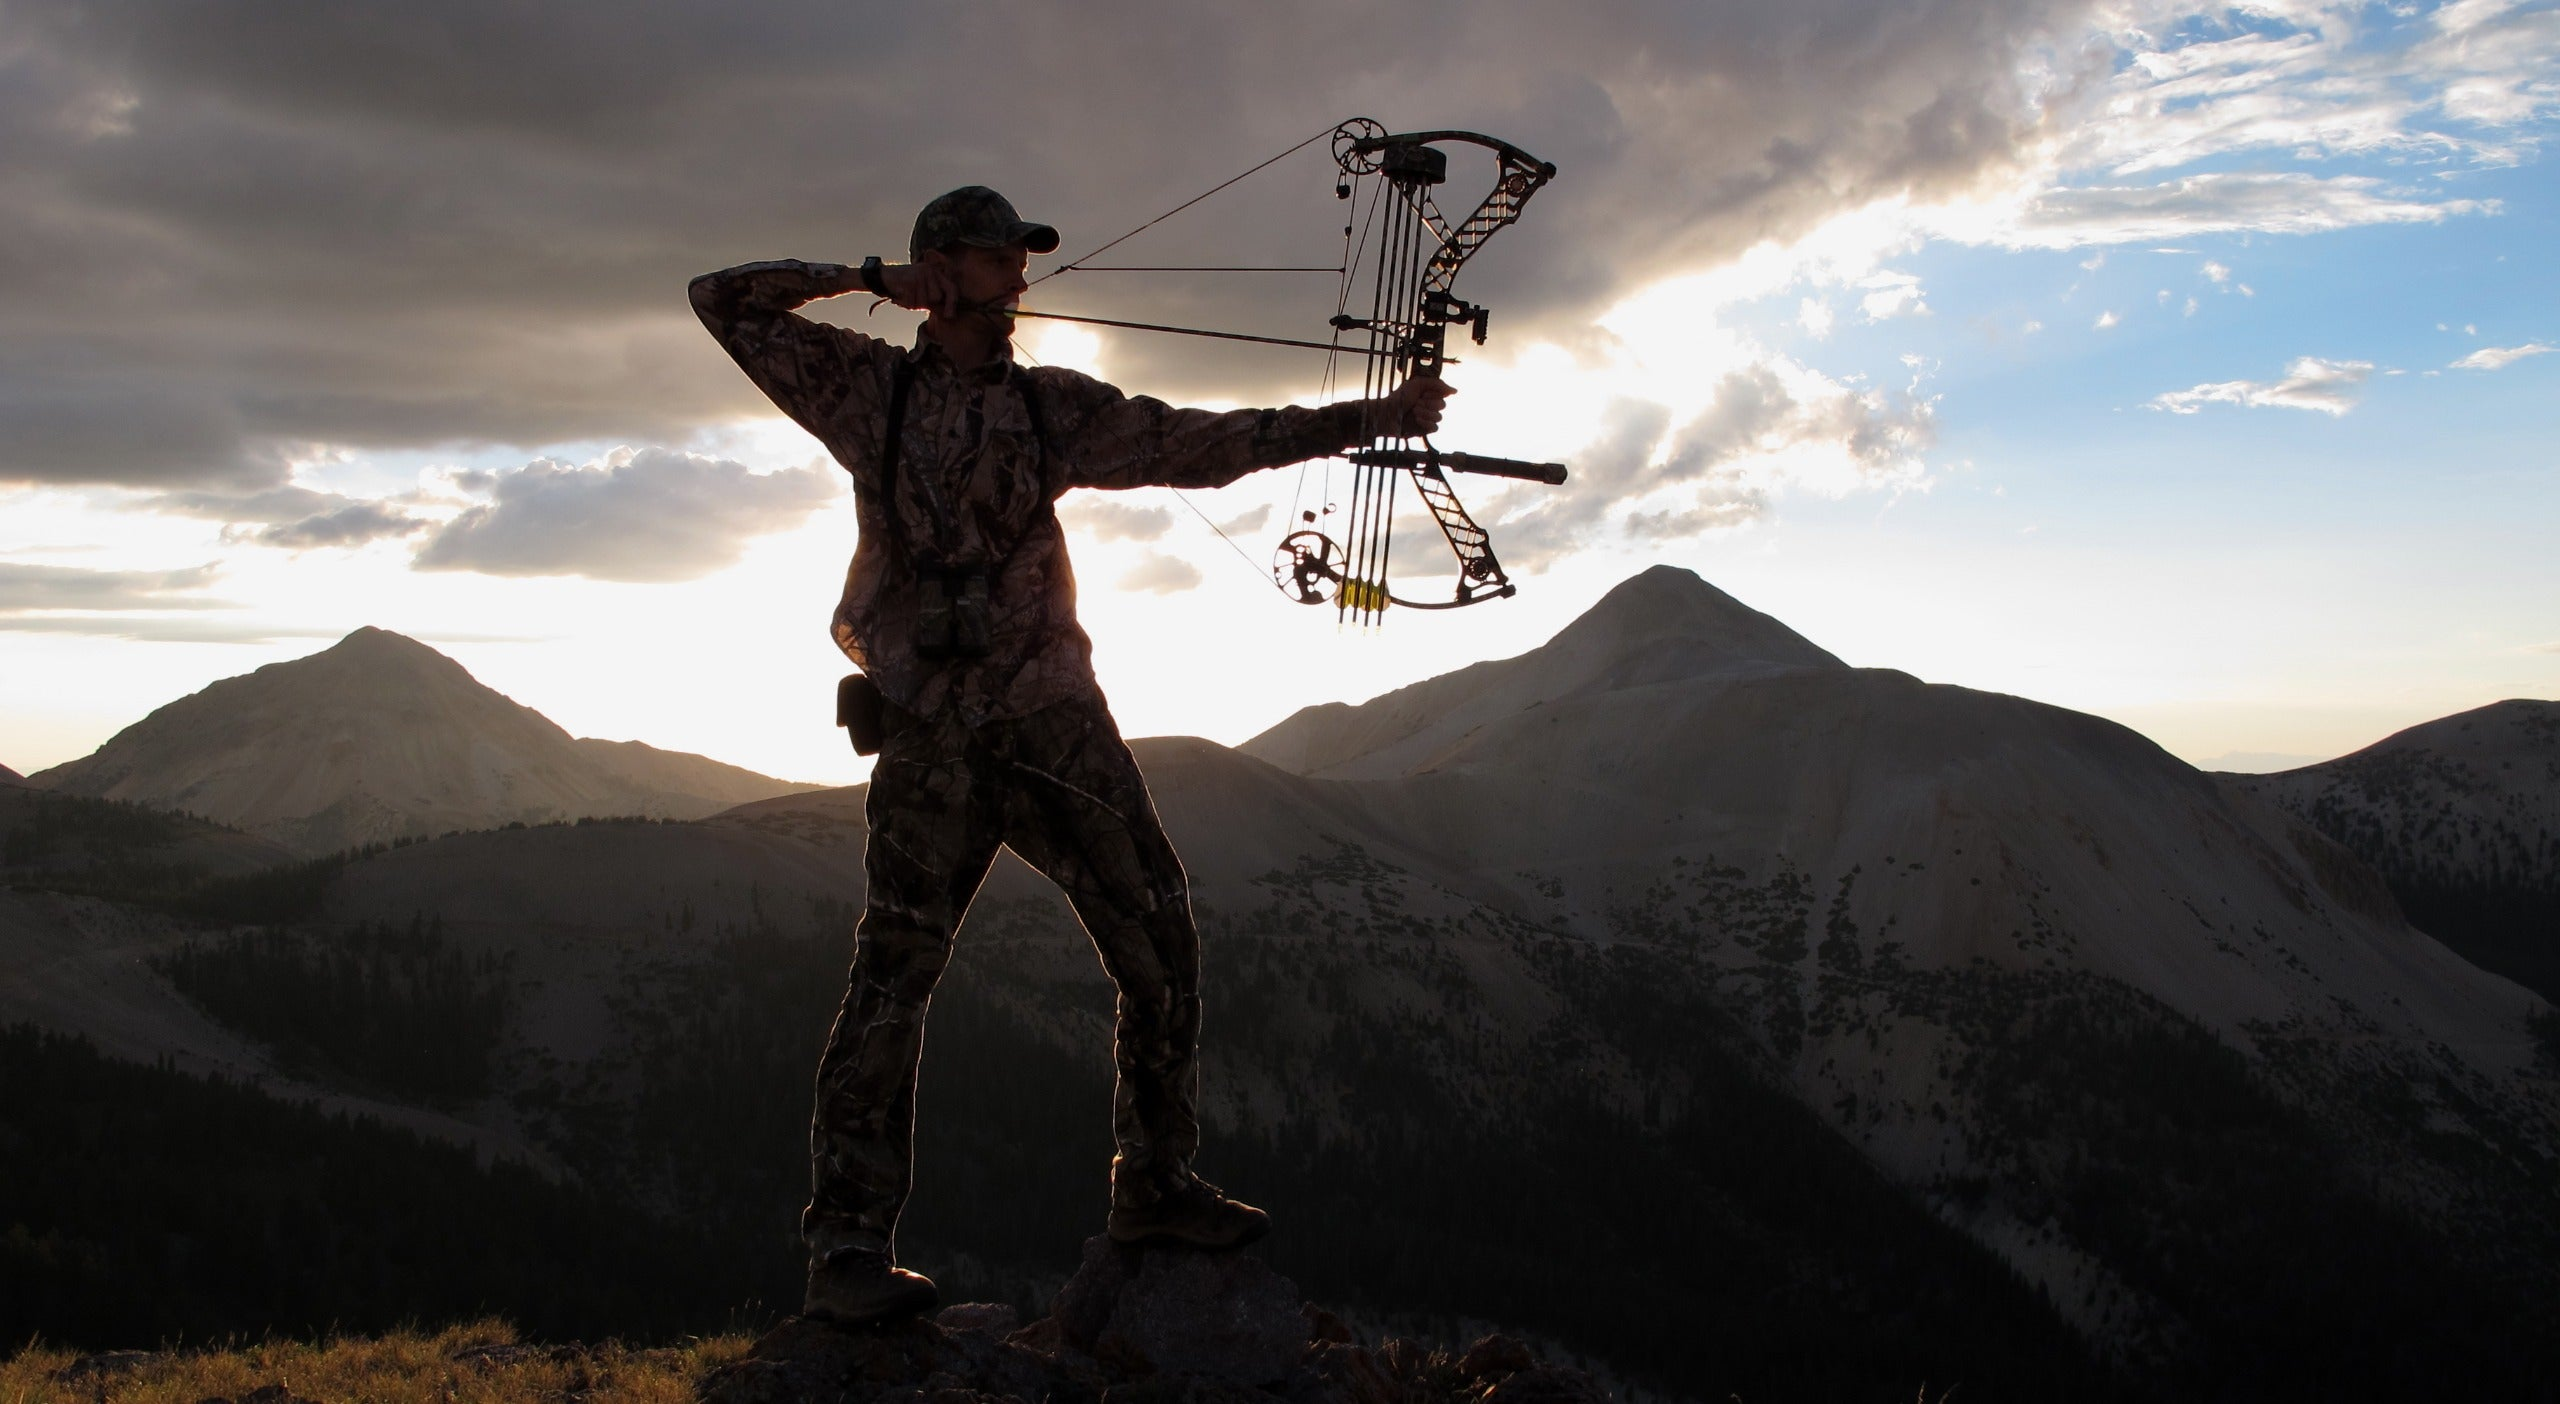 Why is Hunting With Bows or Crossbows Banned in Germany